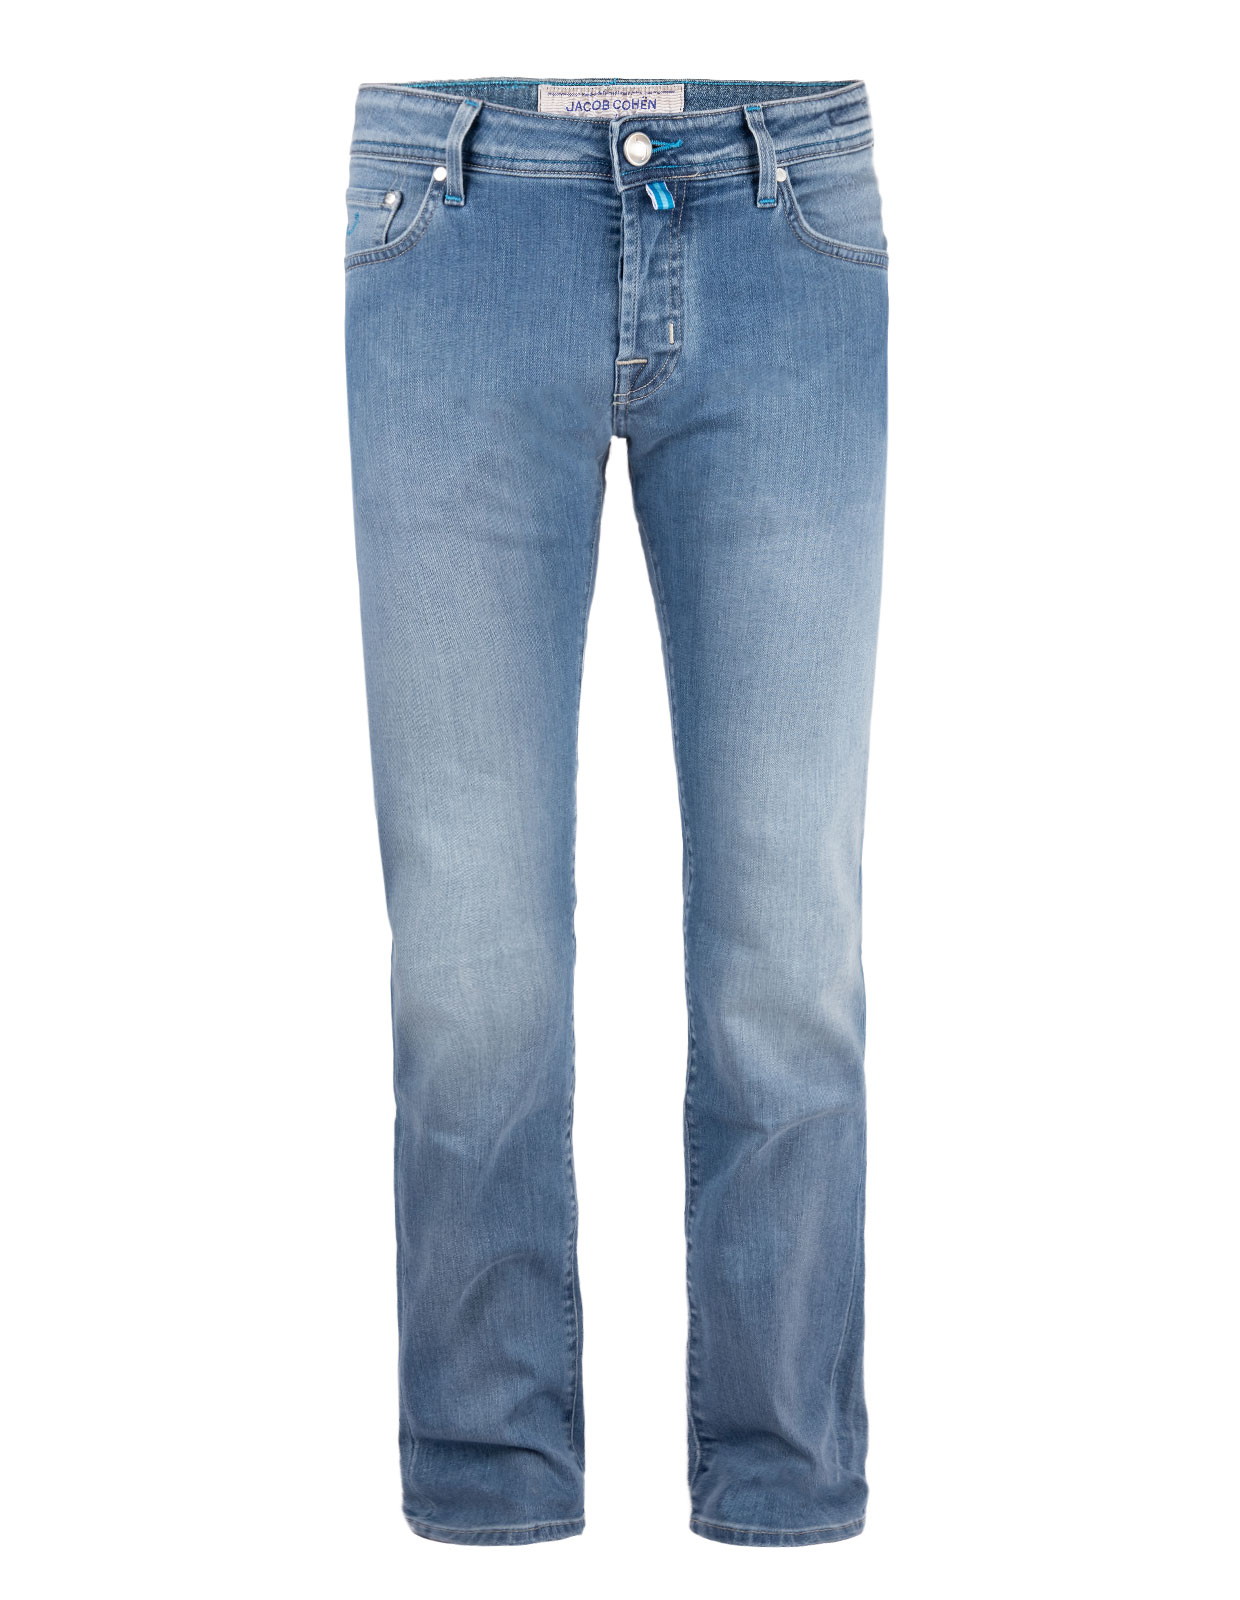 J622 Jeans 00918 Denim Stretch LightBlueWash